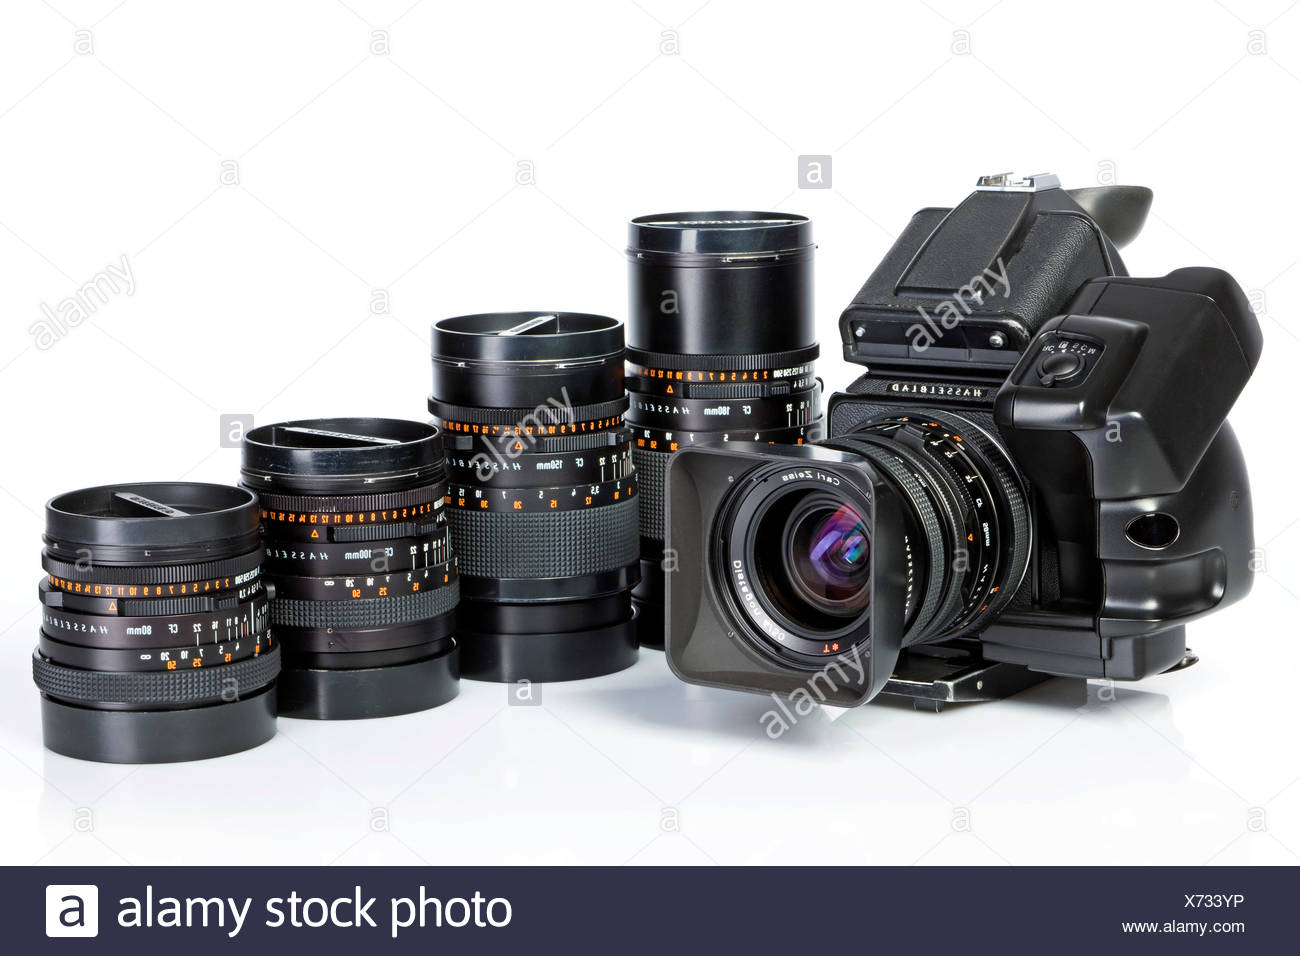 Hasselblad 503CW with lenses Stock Photo: 279737466 - Alamy